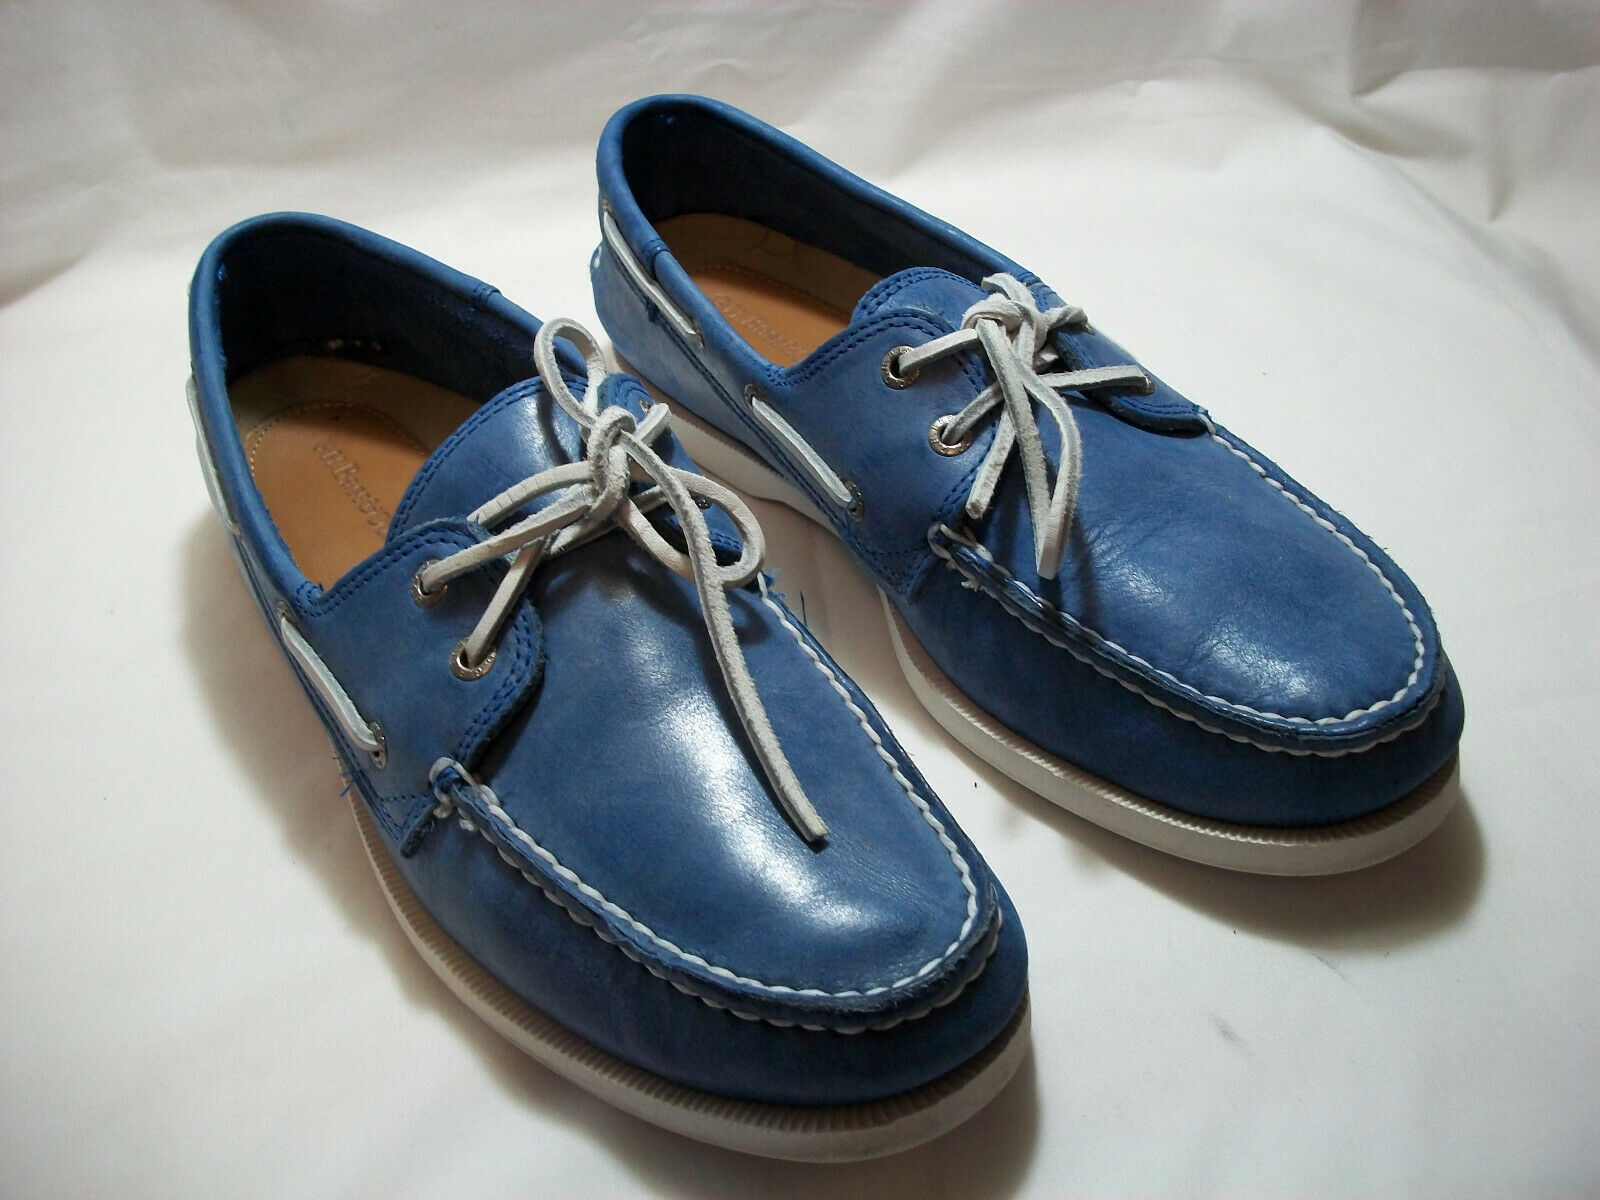 G.H. BASS & CO. HAMPTON blueE LEATHER BOAT SHOES  SIZE 10.5 M